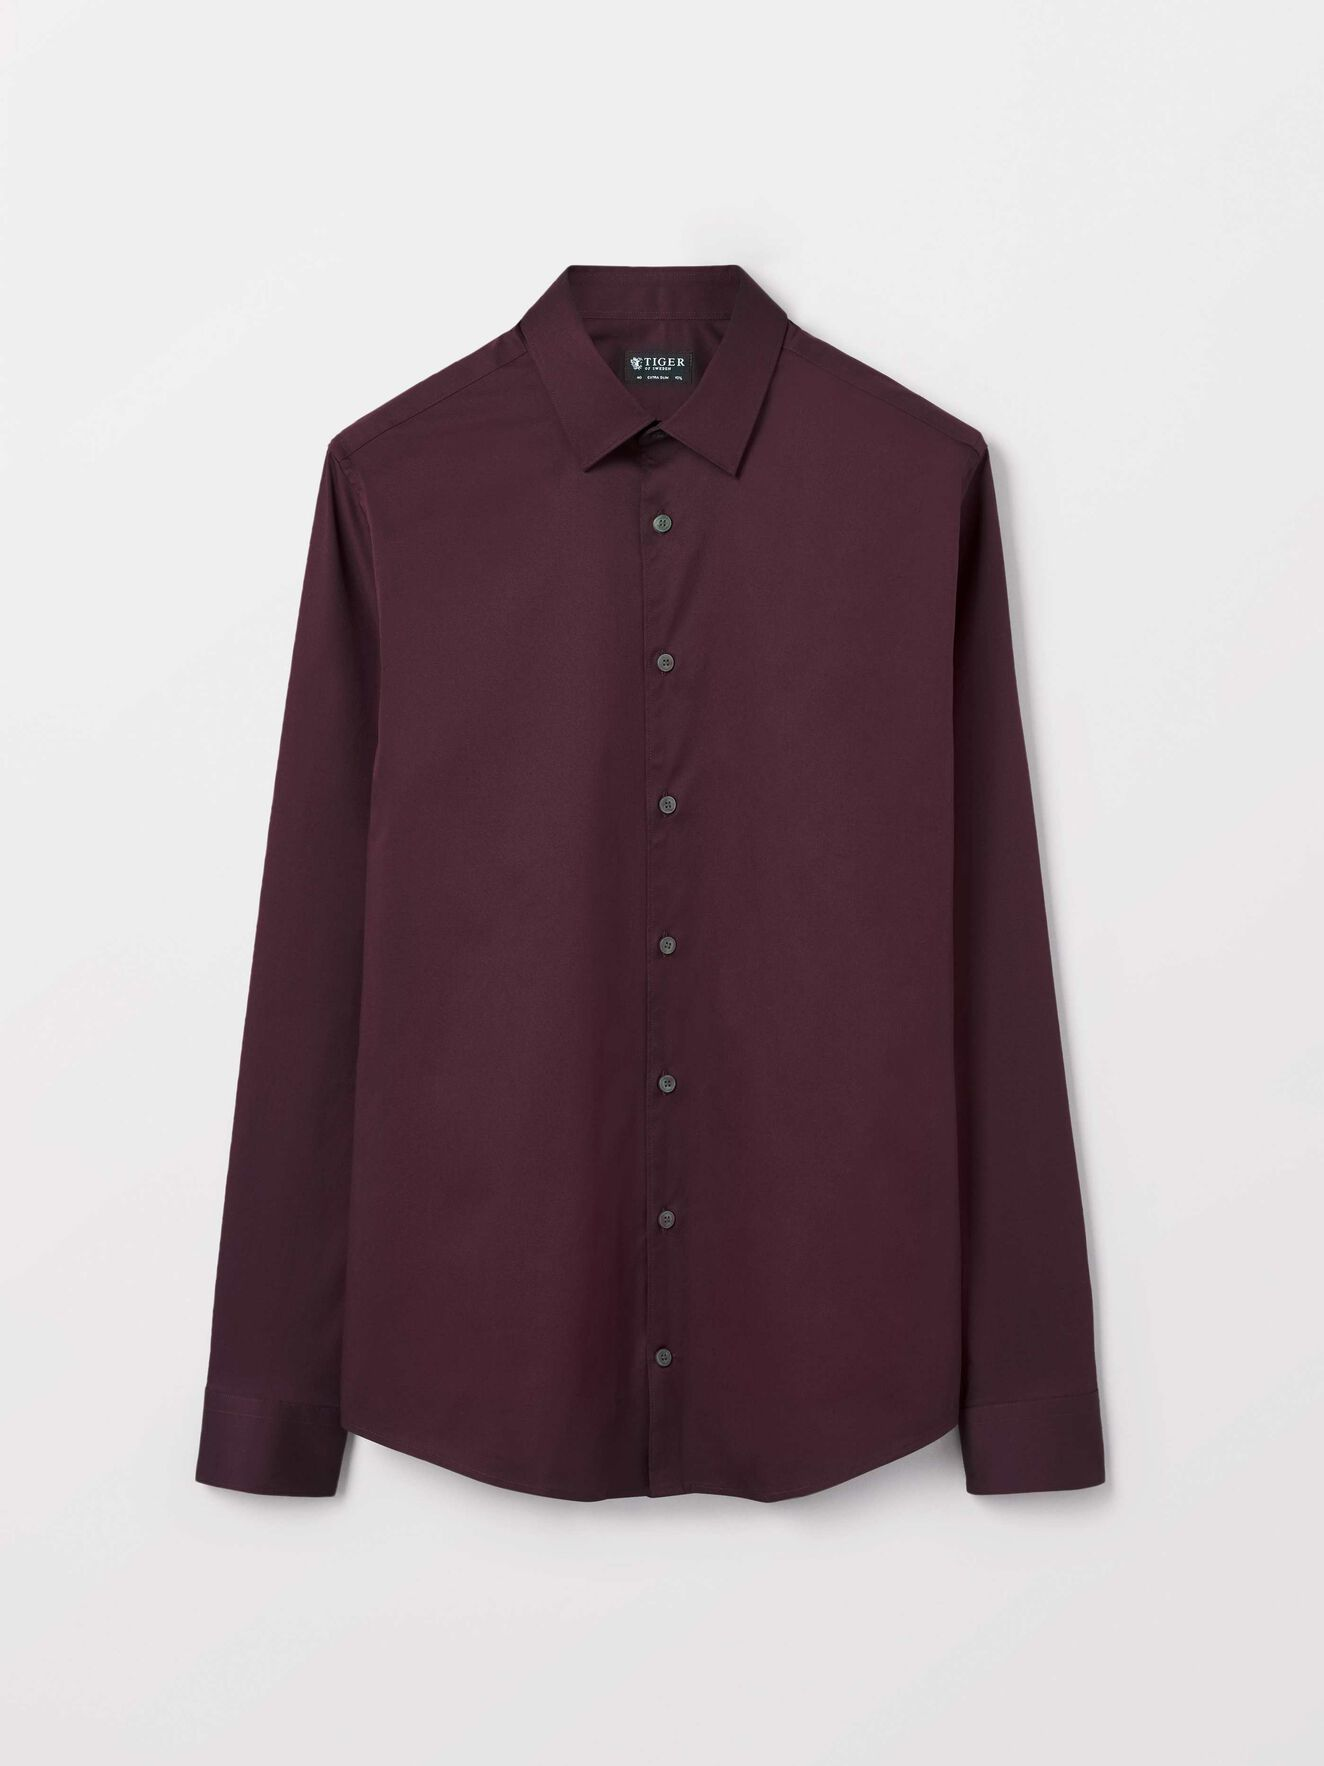 Filbrodie Shirt in Noon Plum from Tiger of Sweden